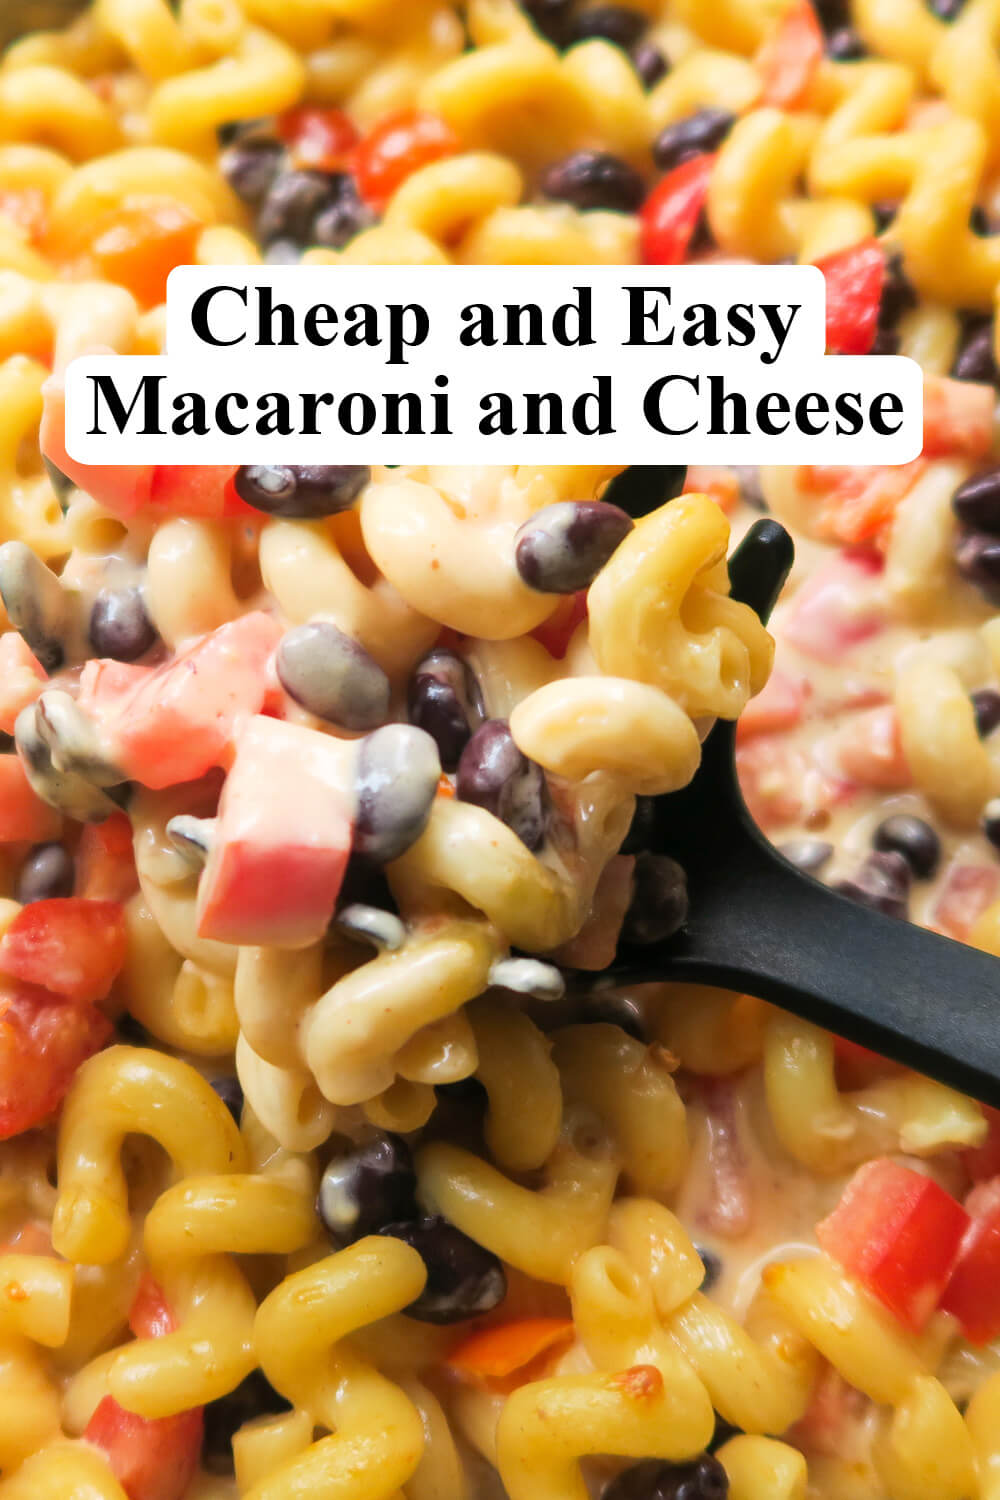 Cheap and Easy Mac and Cheese